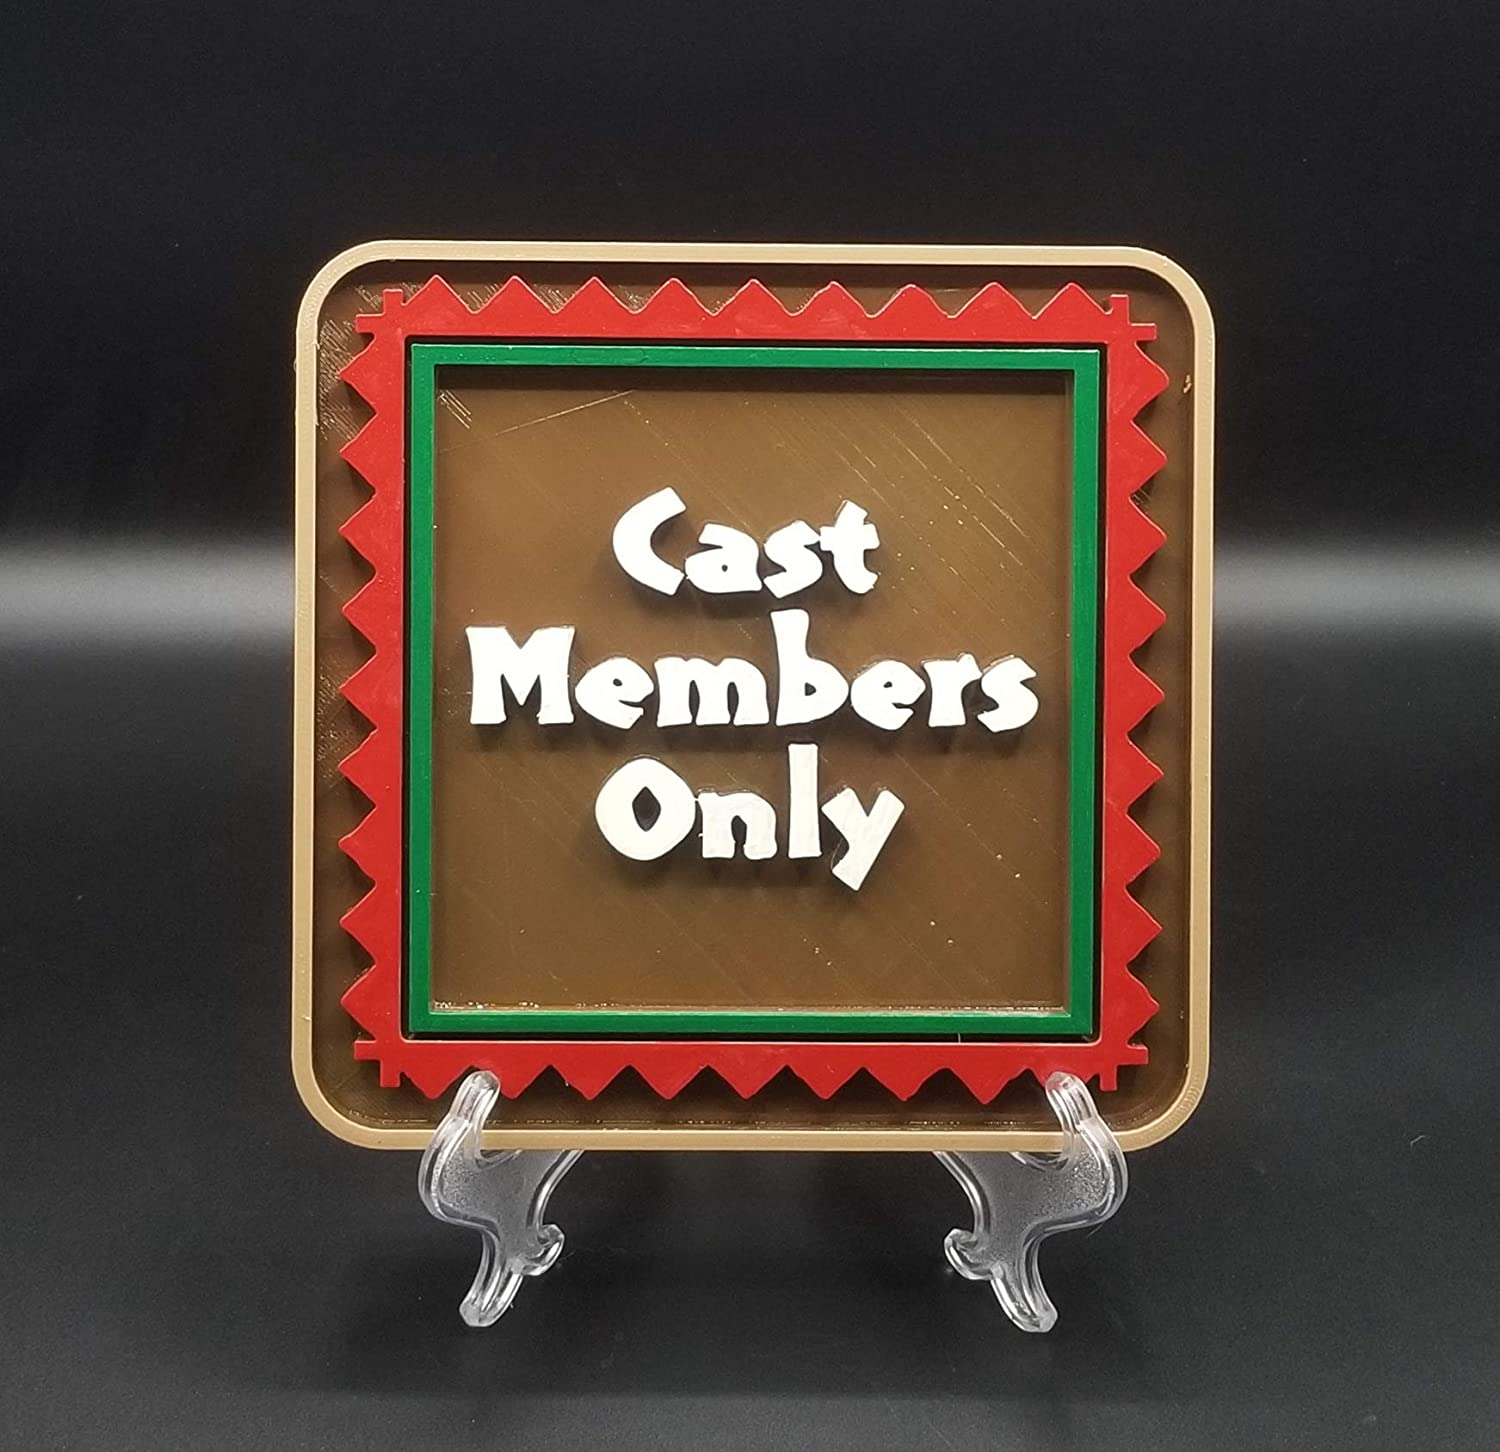 Ye Olde Proppe Shoppe LLC Inexpensive Cast Plaque Members - Sign Polyne Only Max 85% OFF